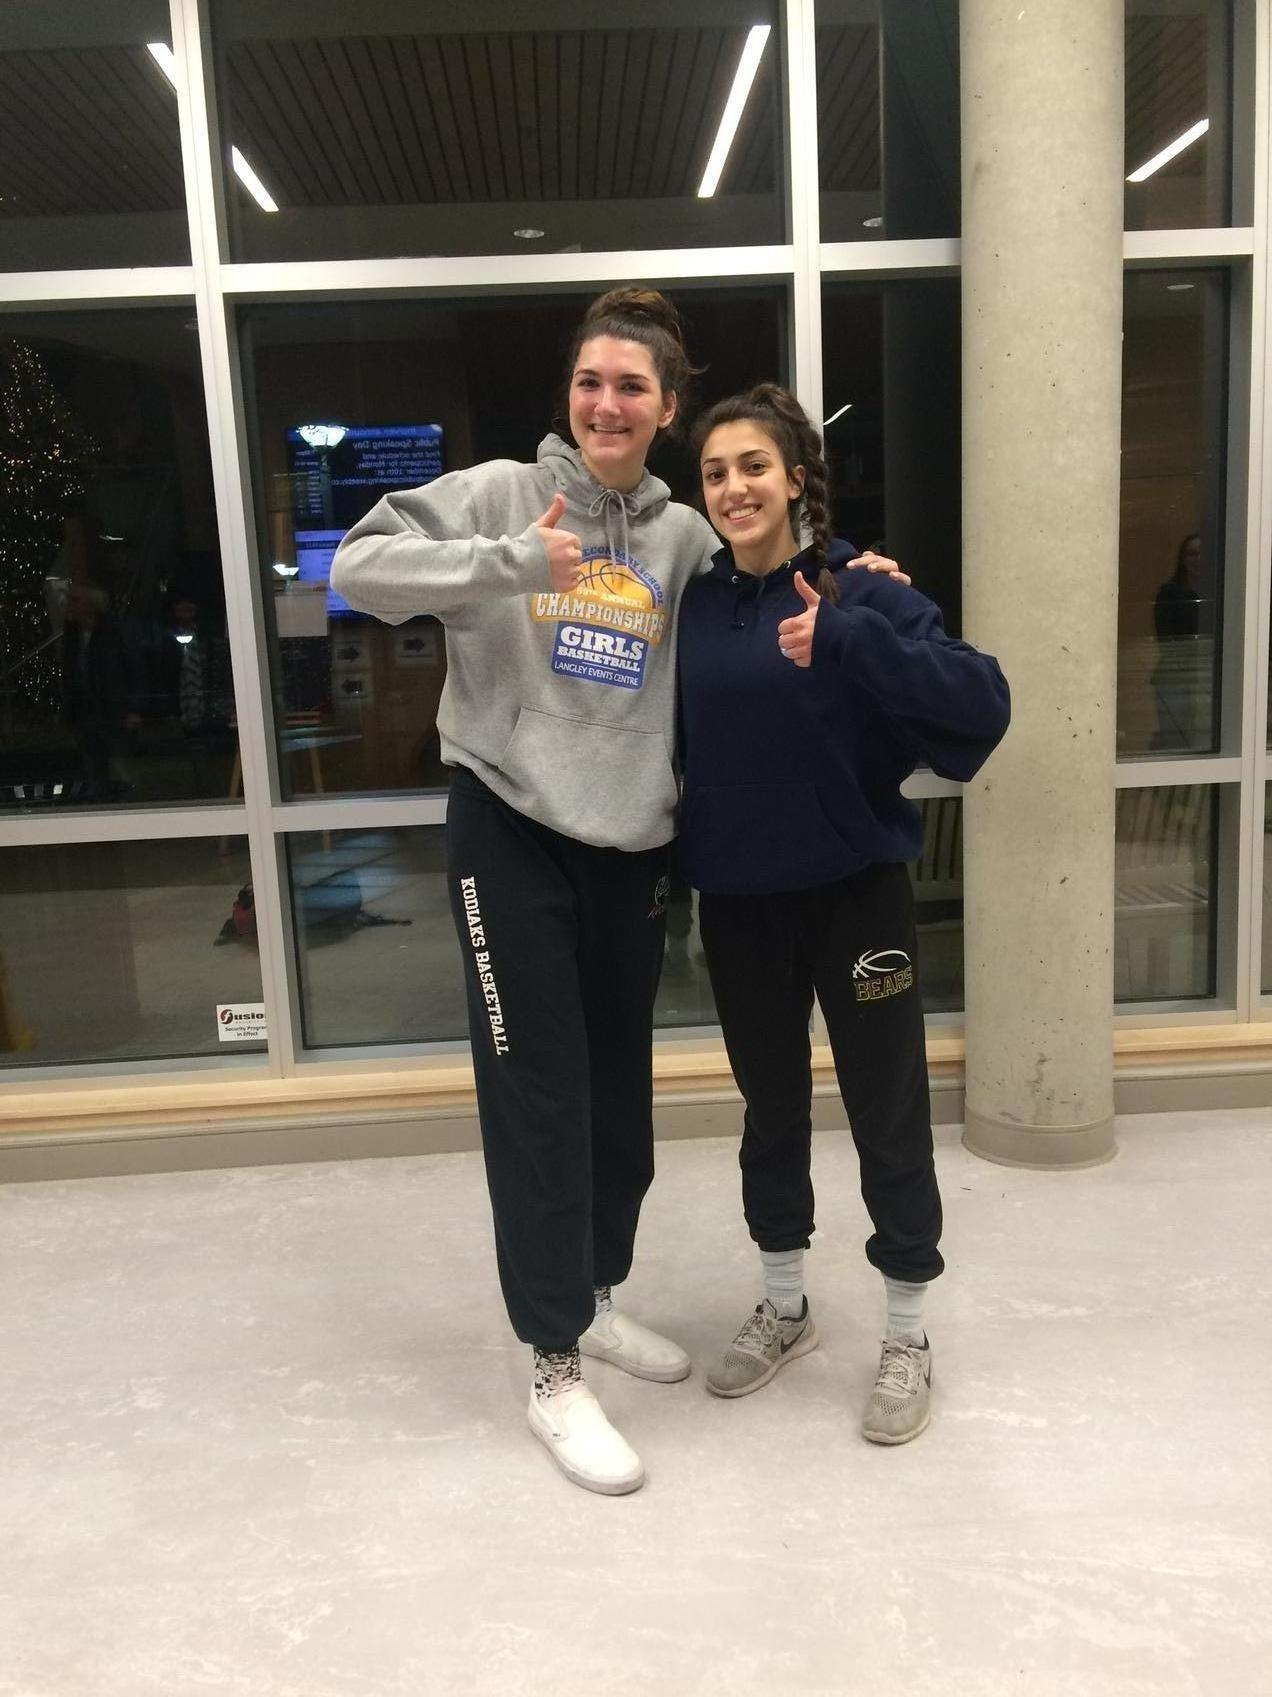 Heat bound Langley post, Emily Instant, and Saskatoon guard, Mira Witt, met in a December 2018 tournament on the Lower Mainland.